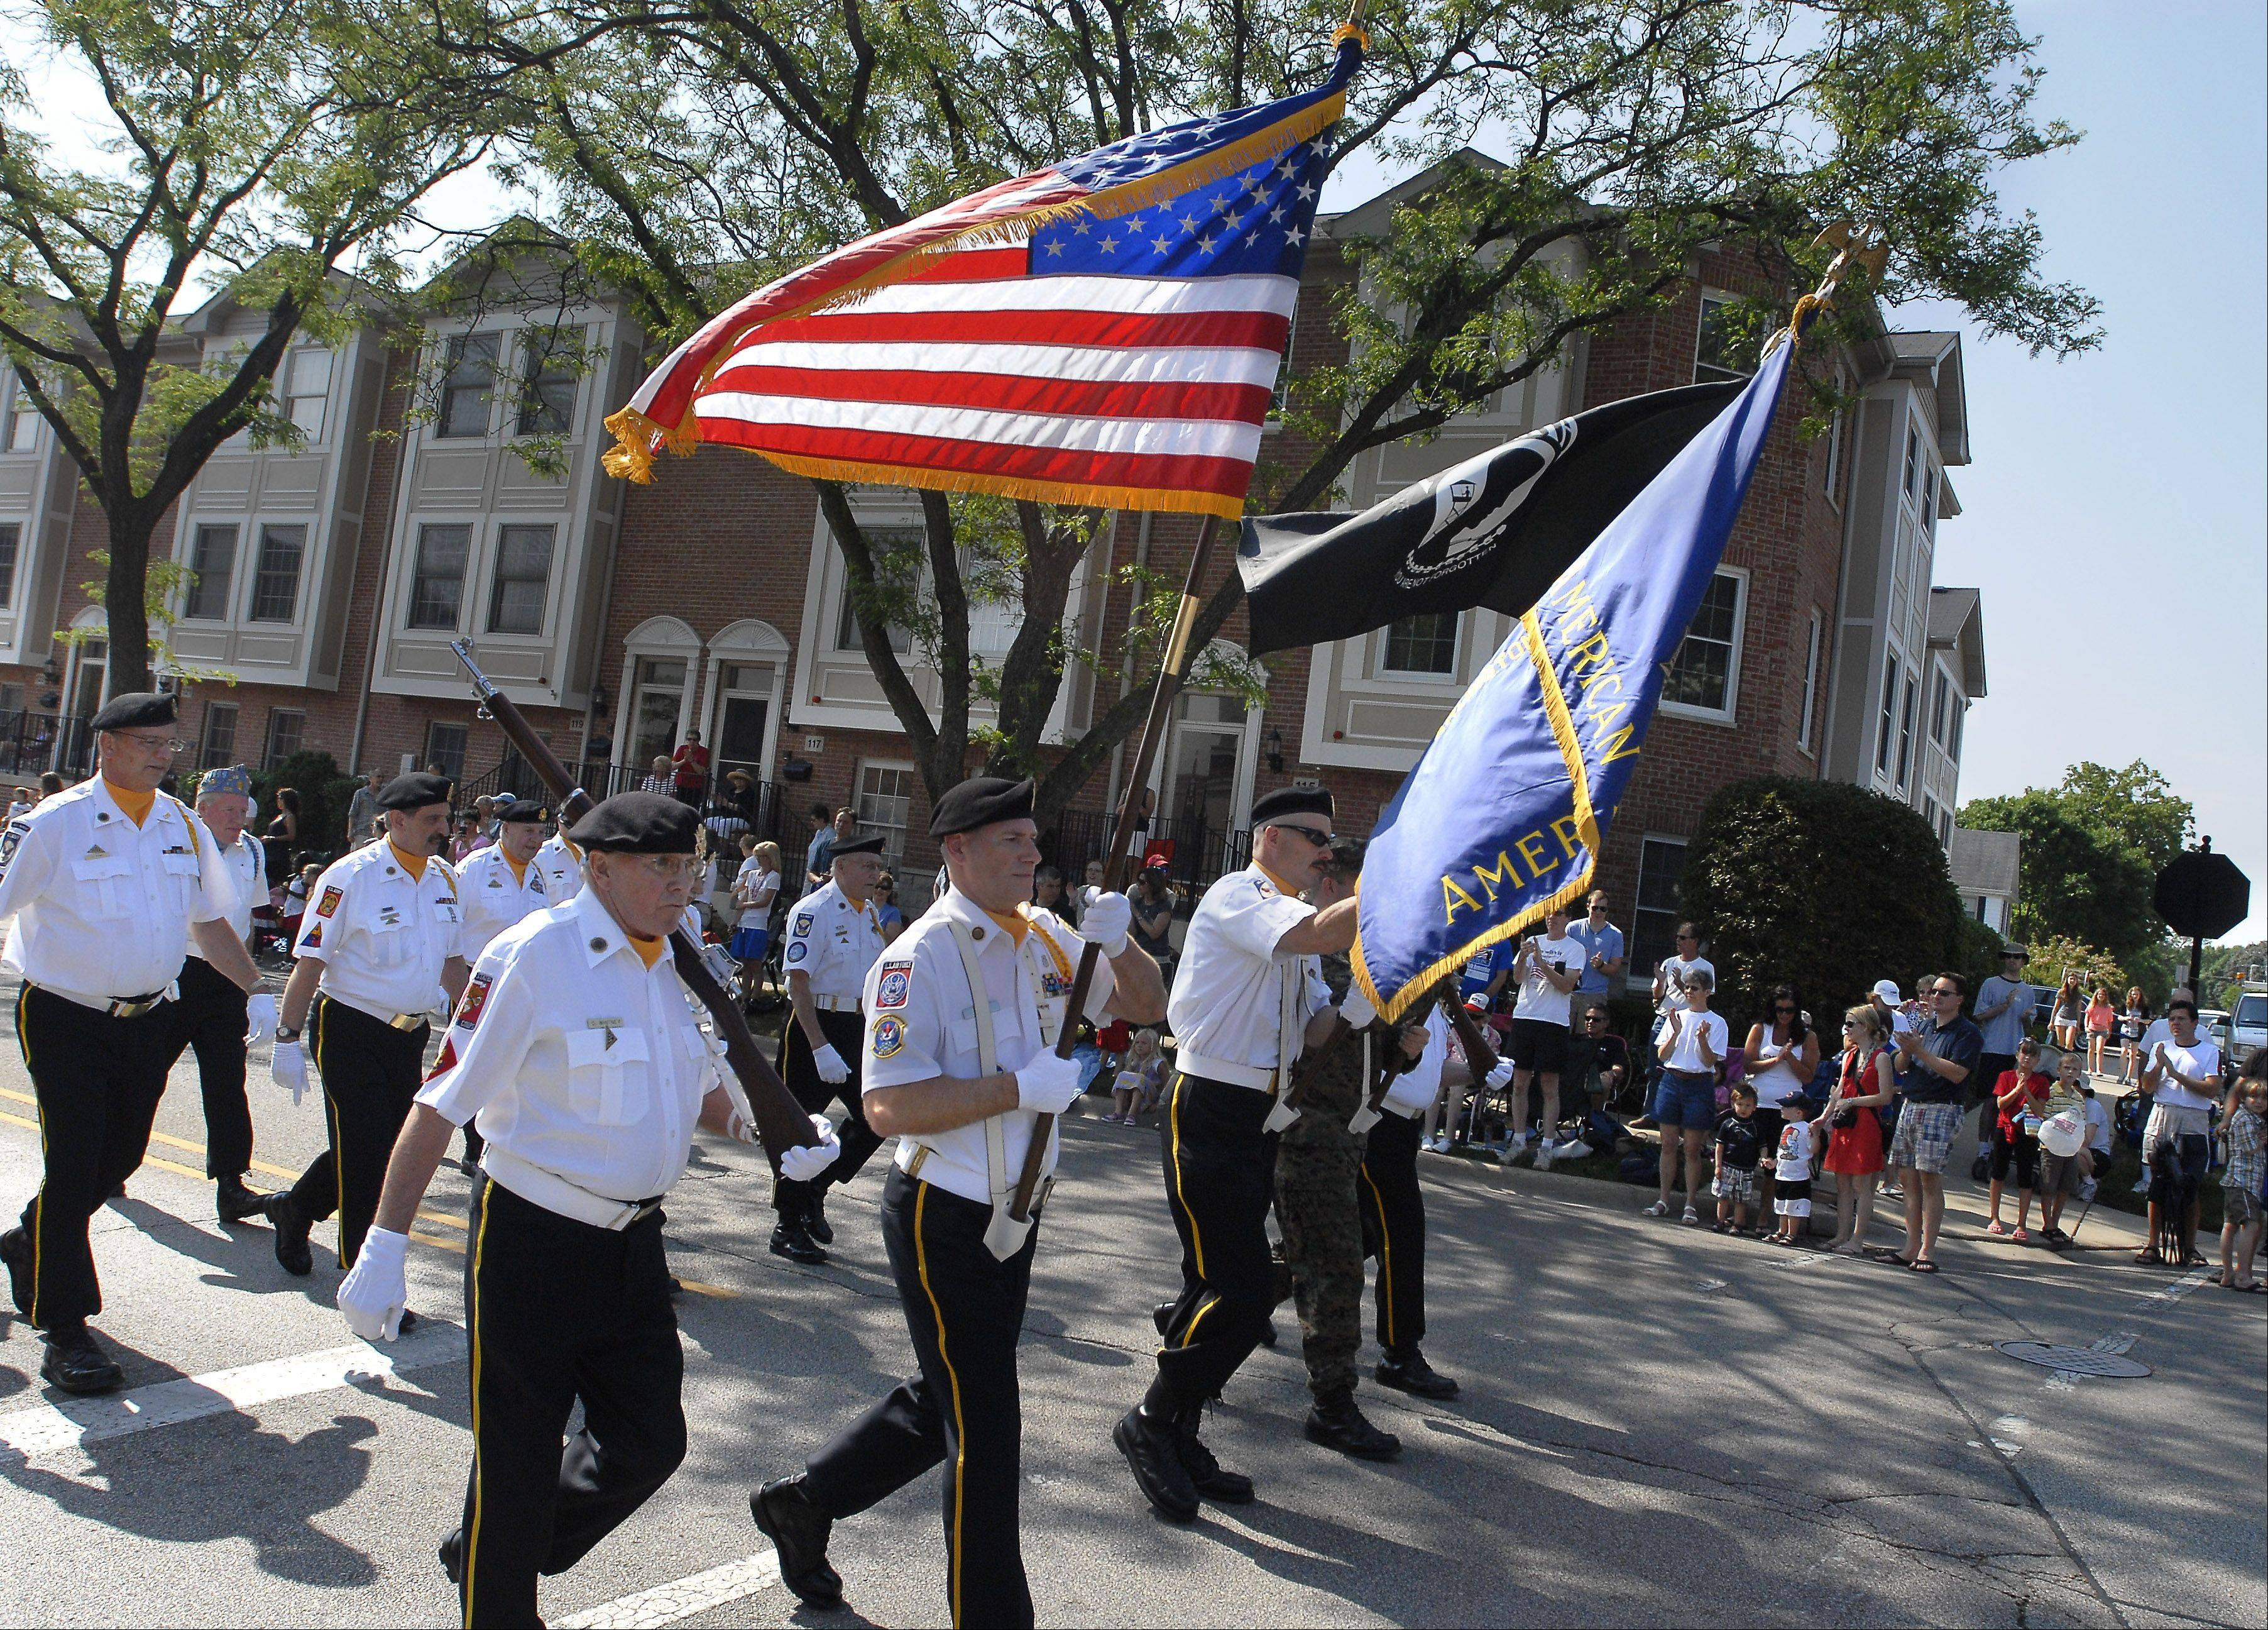 Parade goers stand as members of the Arlington Heights American Legion Merle Guild Post 208 bear the flag at the Memorial Day parade in Monday in Arlington Heights.